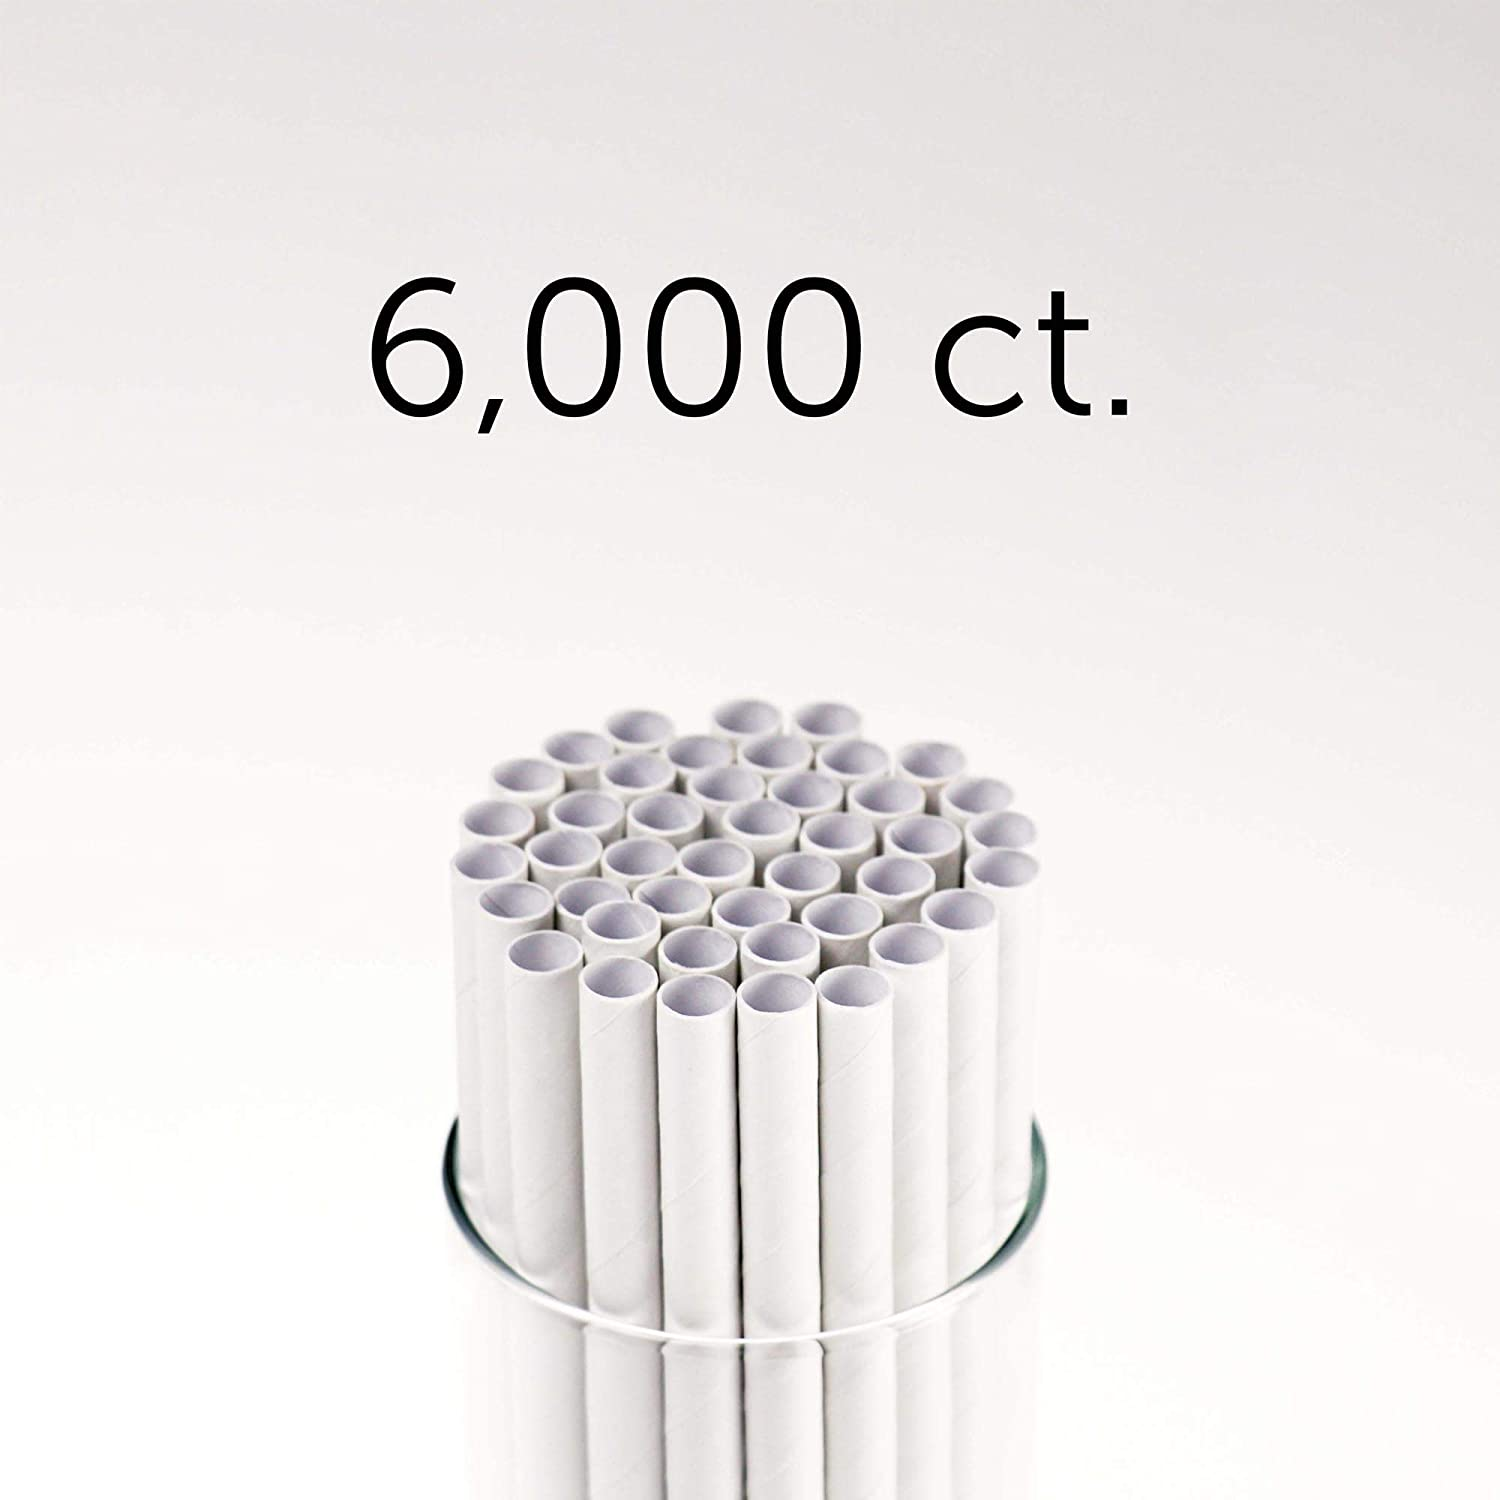 """Footprint Paper Straws - Giant 10"""" (6000ct) Unwrapped - Biodegradable, Premium Eco-Friendly Paper Straws in Bulk for Restaurants, Juices, Smoothies, White, Model Number: FPS-08-254-U-000"""